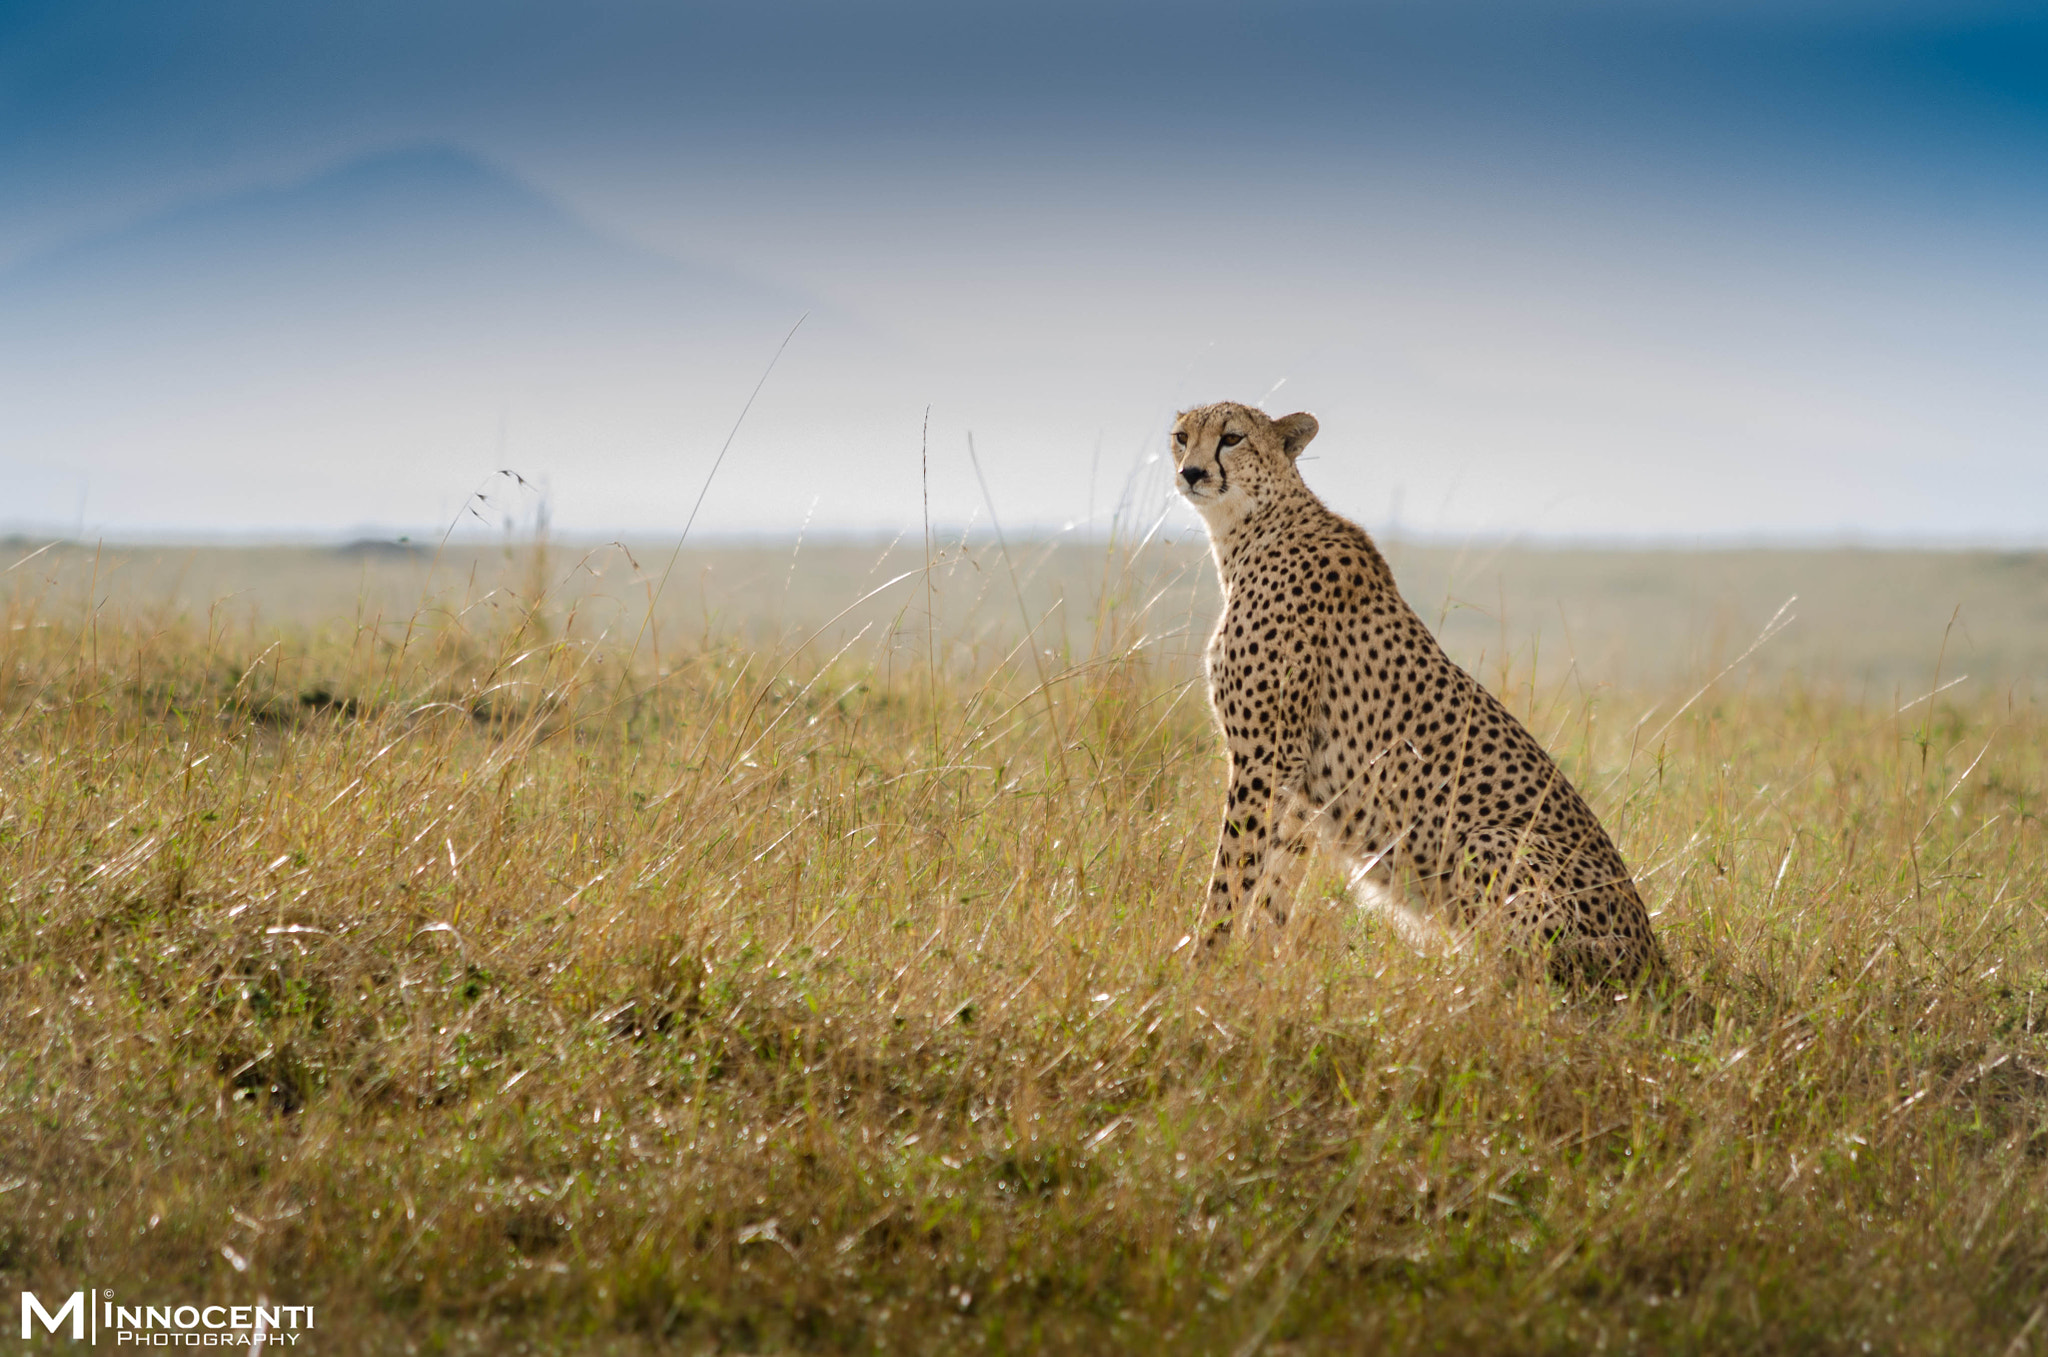 Photograph cheetah in Maasai Mara by Matteo Innocenti on 500px